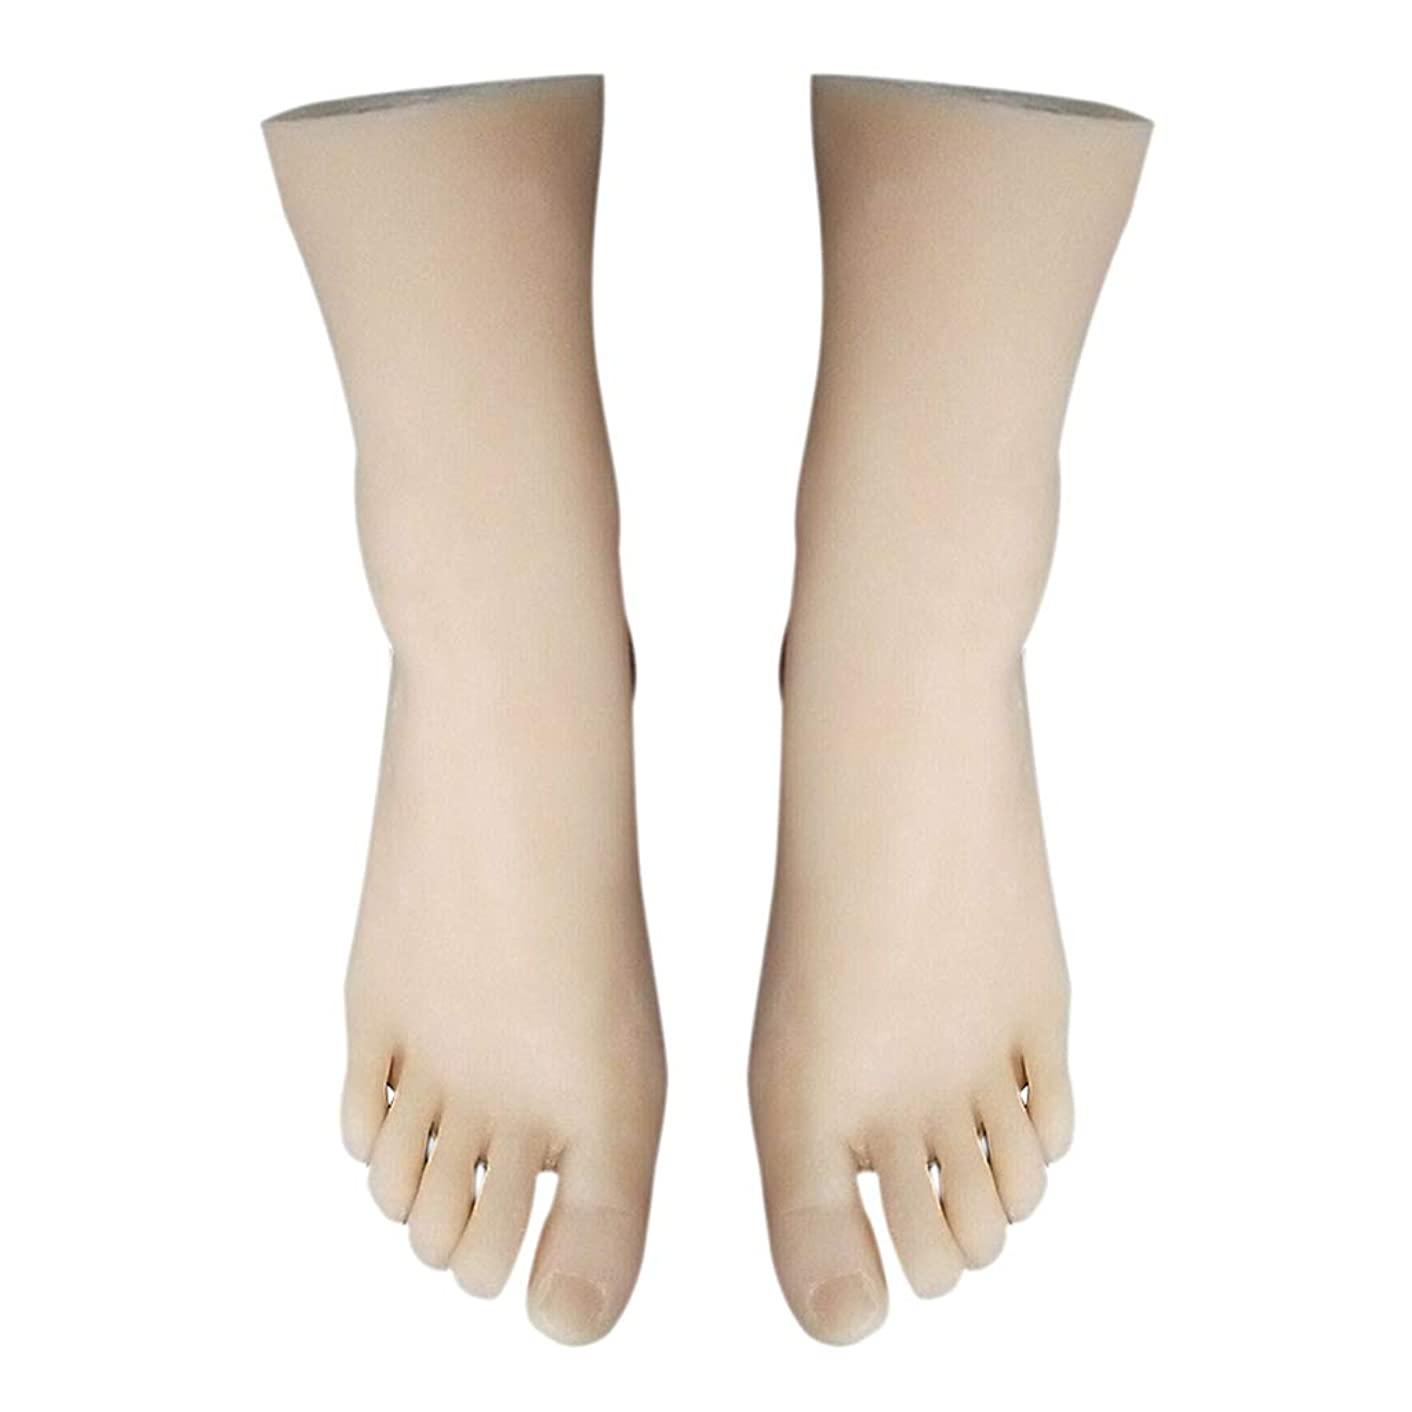 Flameer 1 Pair Flexible Foot Mannequin Life-Size Female Leg Display Model for Sketch Nail Art Tattoo Fake Skin Feet Practice Jewelry Sandal Shoe Sock